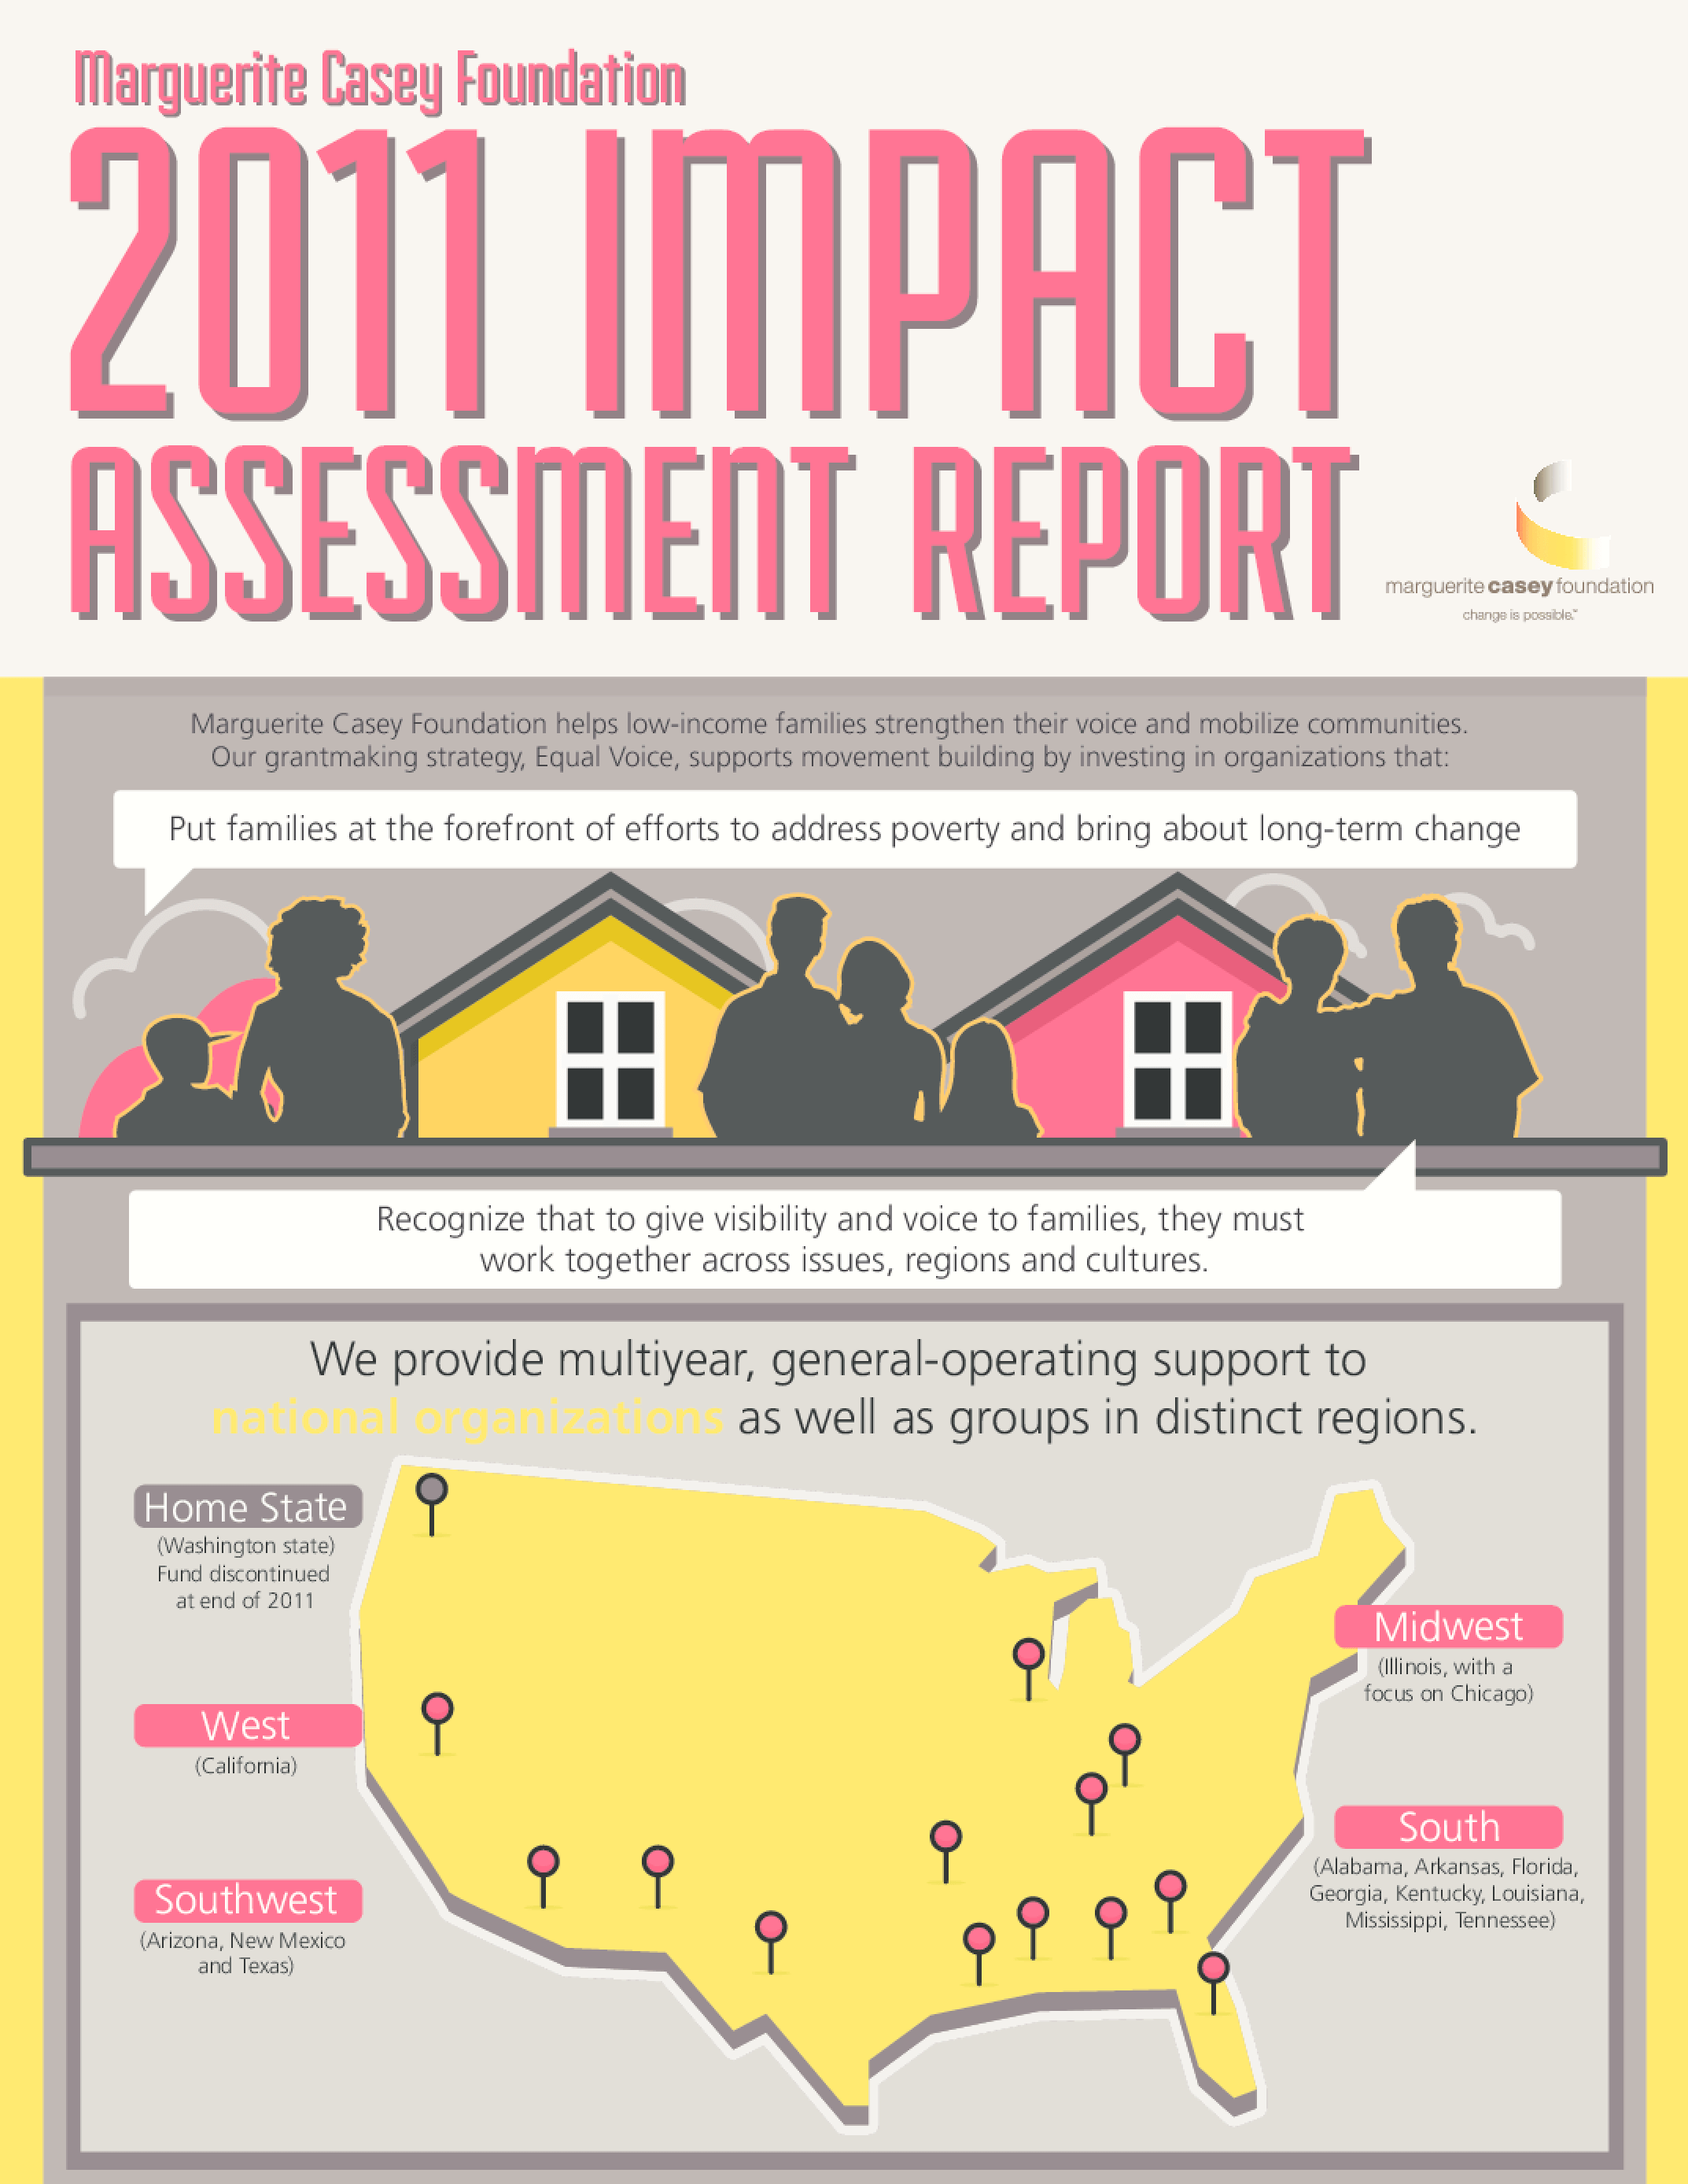 Marguerite Casey Foundation 2011 Impact Assessment Report